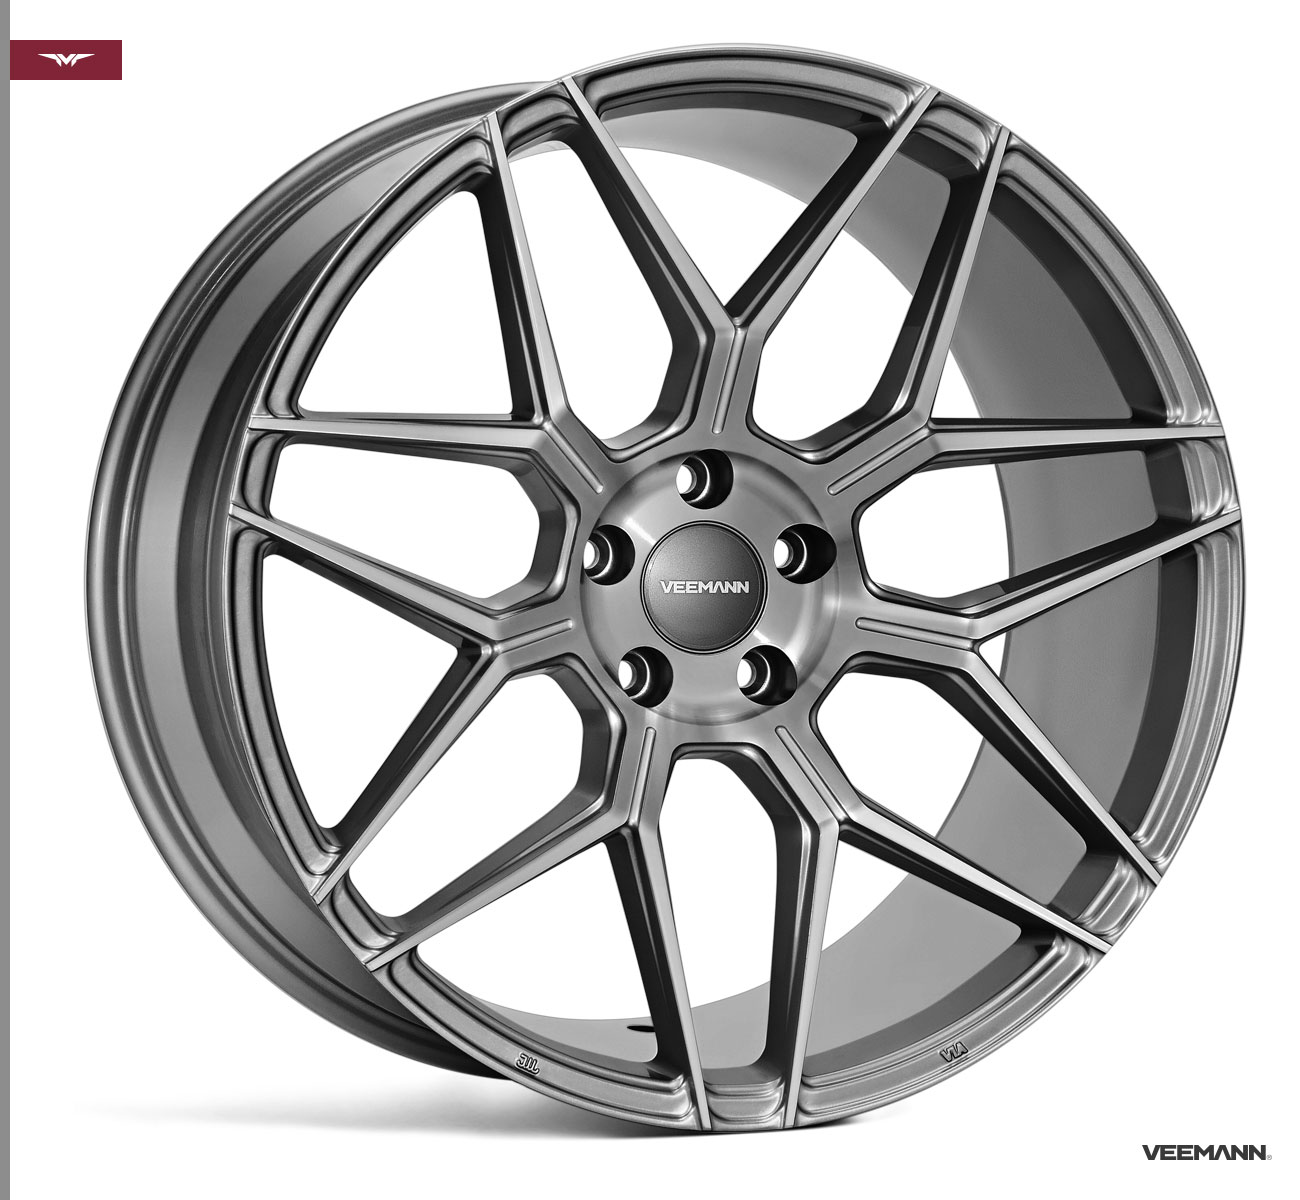 "NEW 18"" VEEMANN V-FS38 ALLOY WHEELS IN GLOSS GRAPHITE WITH WIDER 9"" REAR"